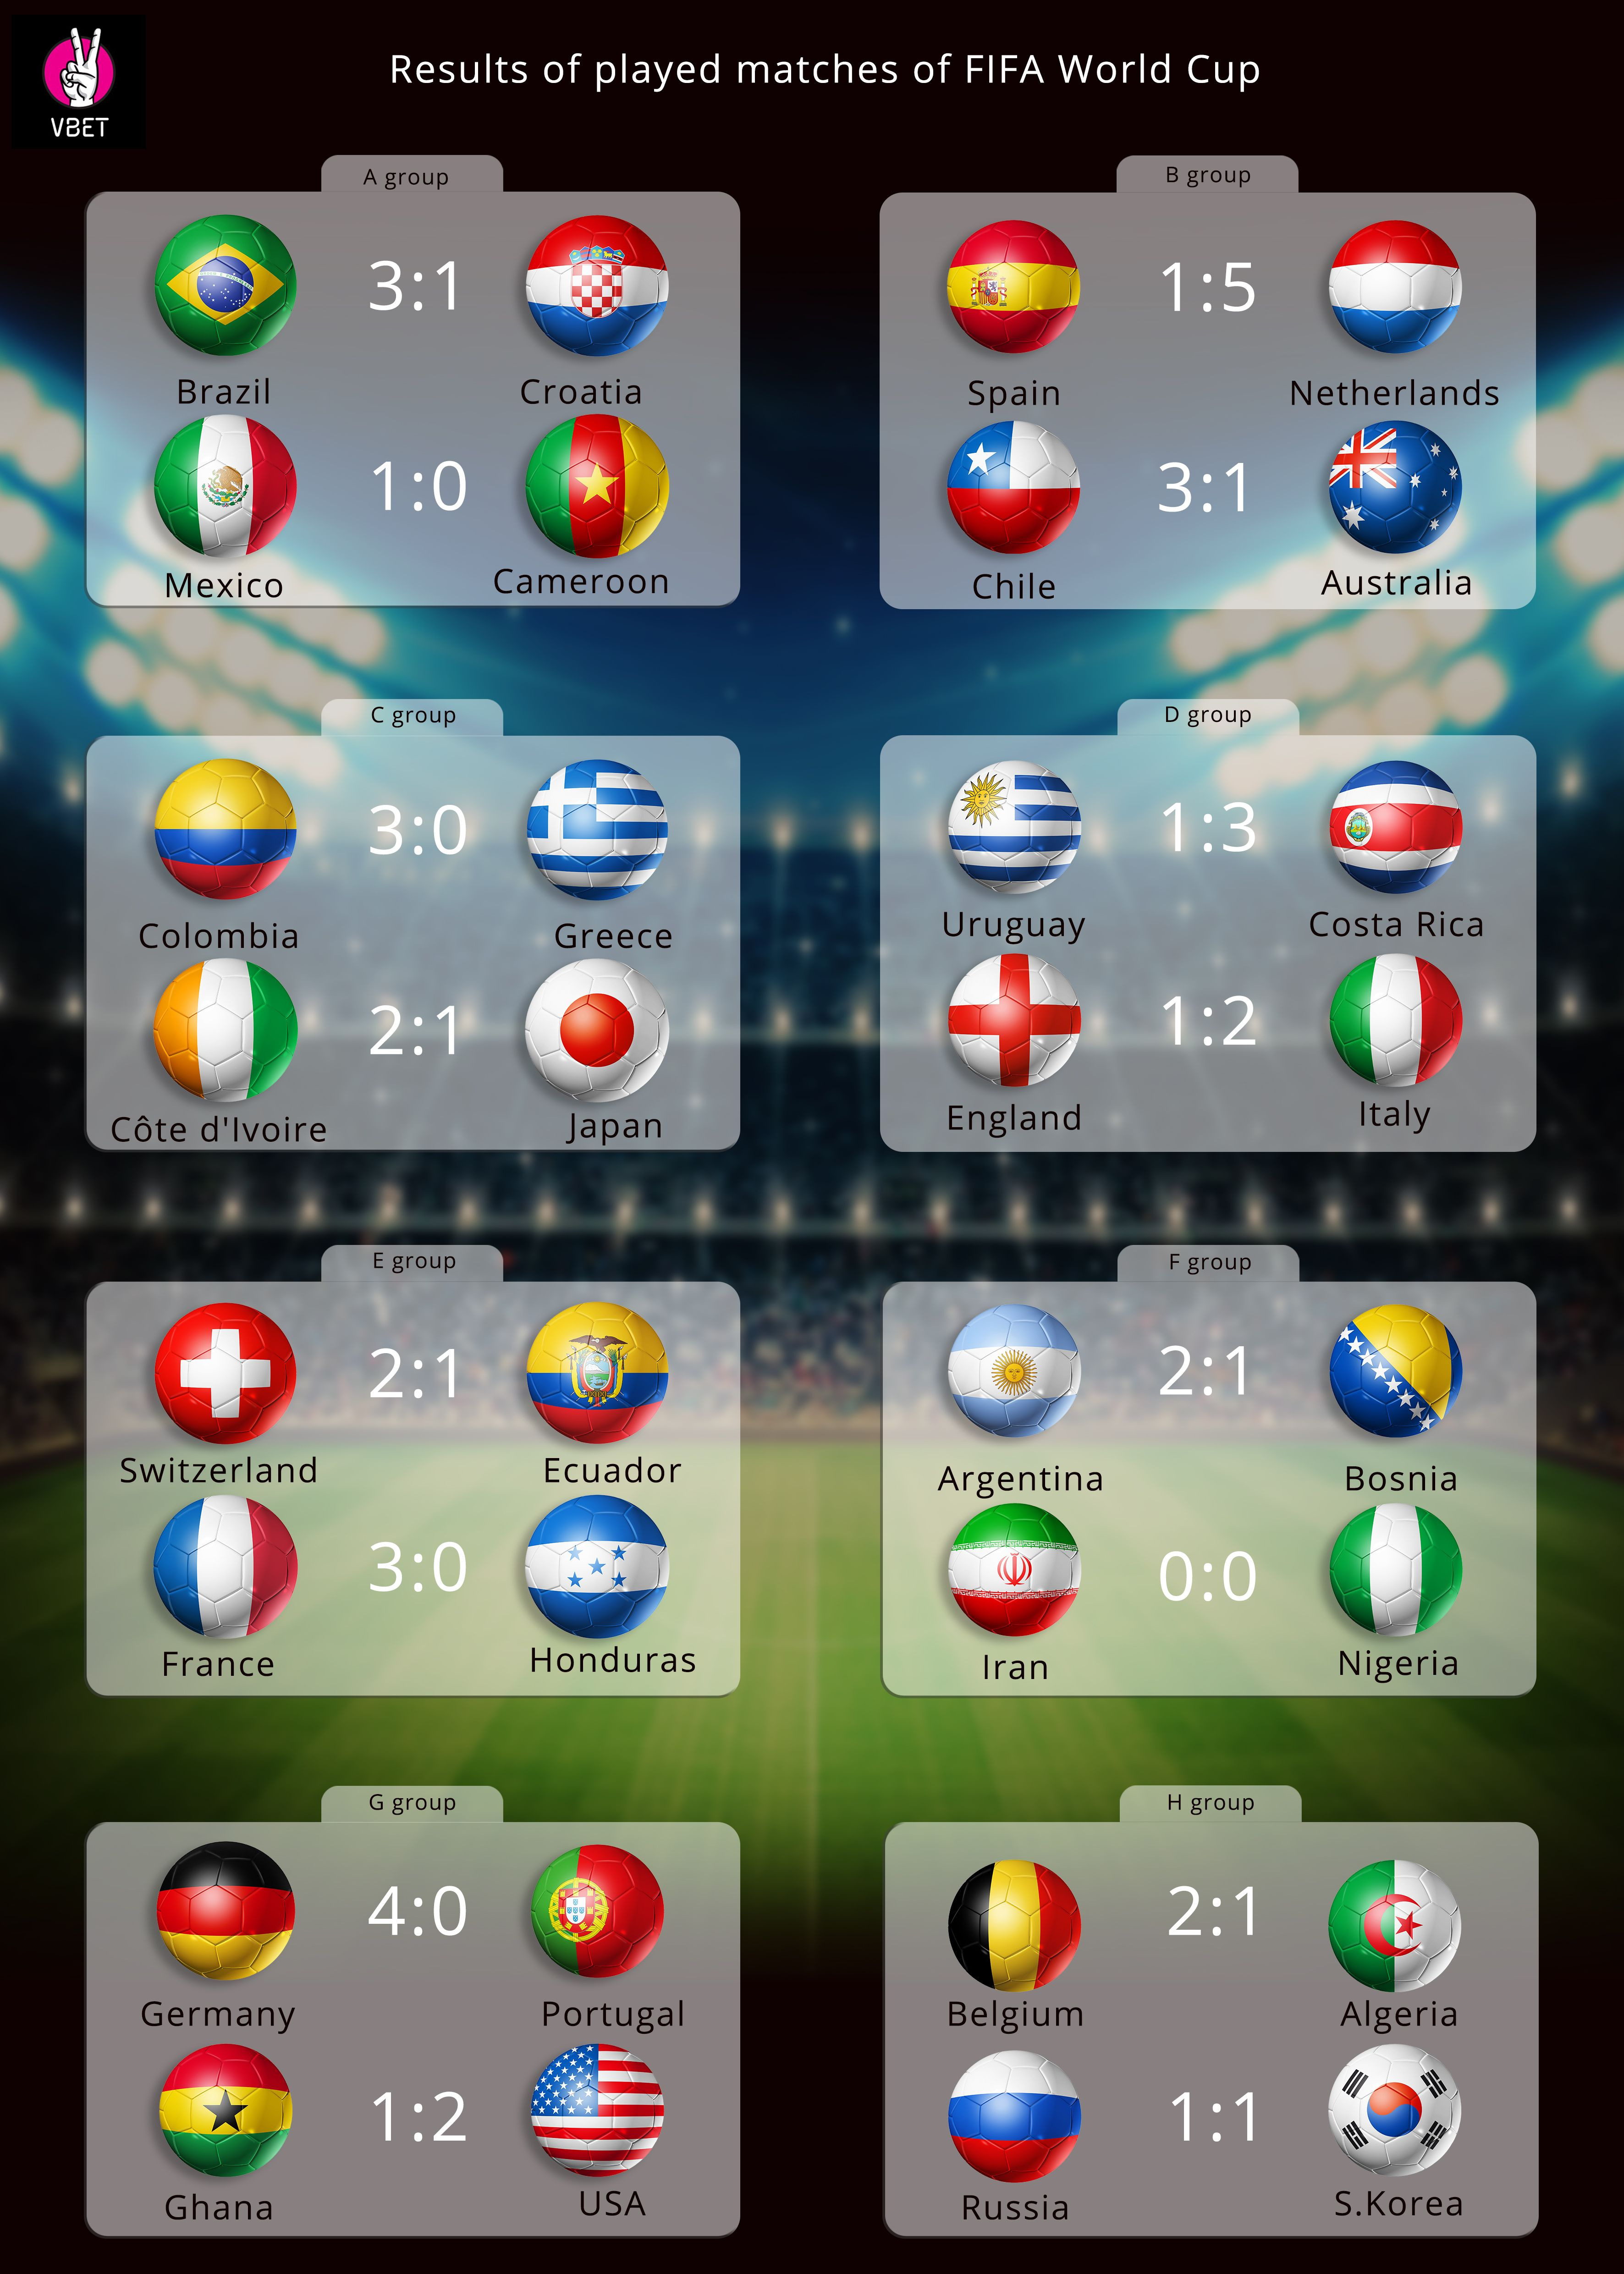 Results Of Football Matches Played At Fifa World Cup By Vbet Bookmaking Company